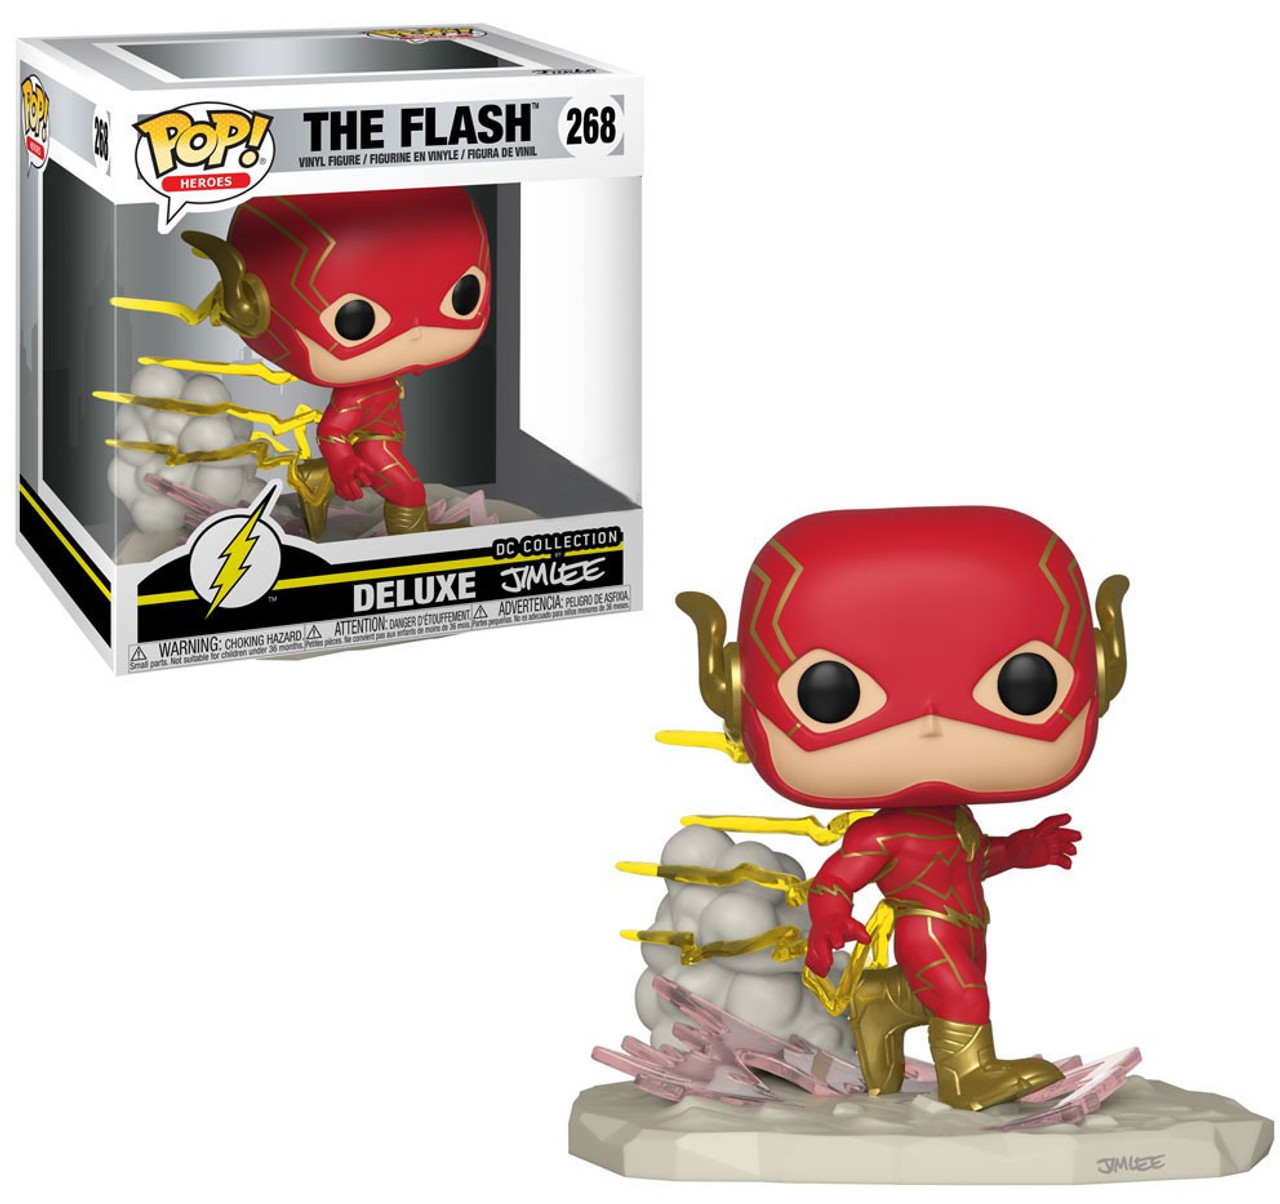 fb42fd35a57 Funko DC Collection by Jim Lee Funko POP Heroes The Flash Exclusive Deluxe Vinyl  Figure 268 - ToyWiz